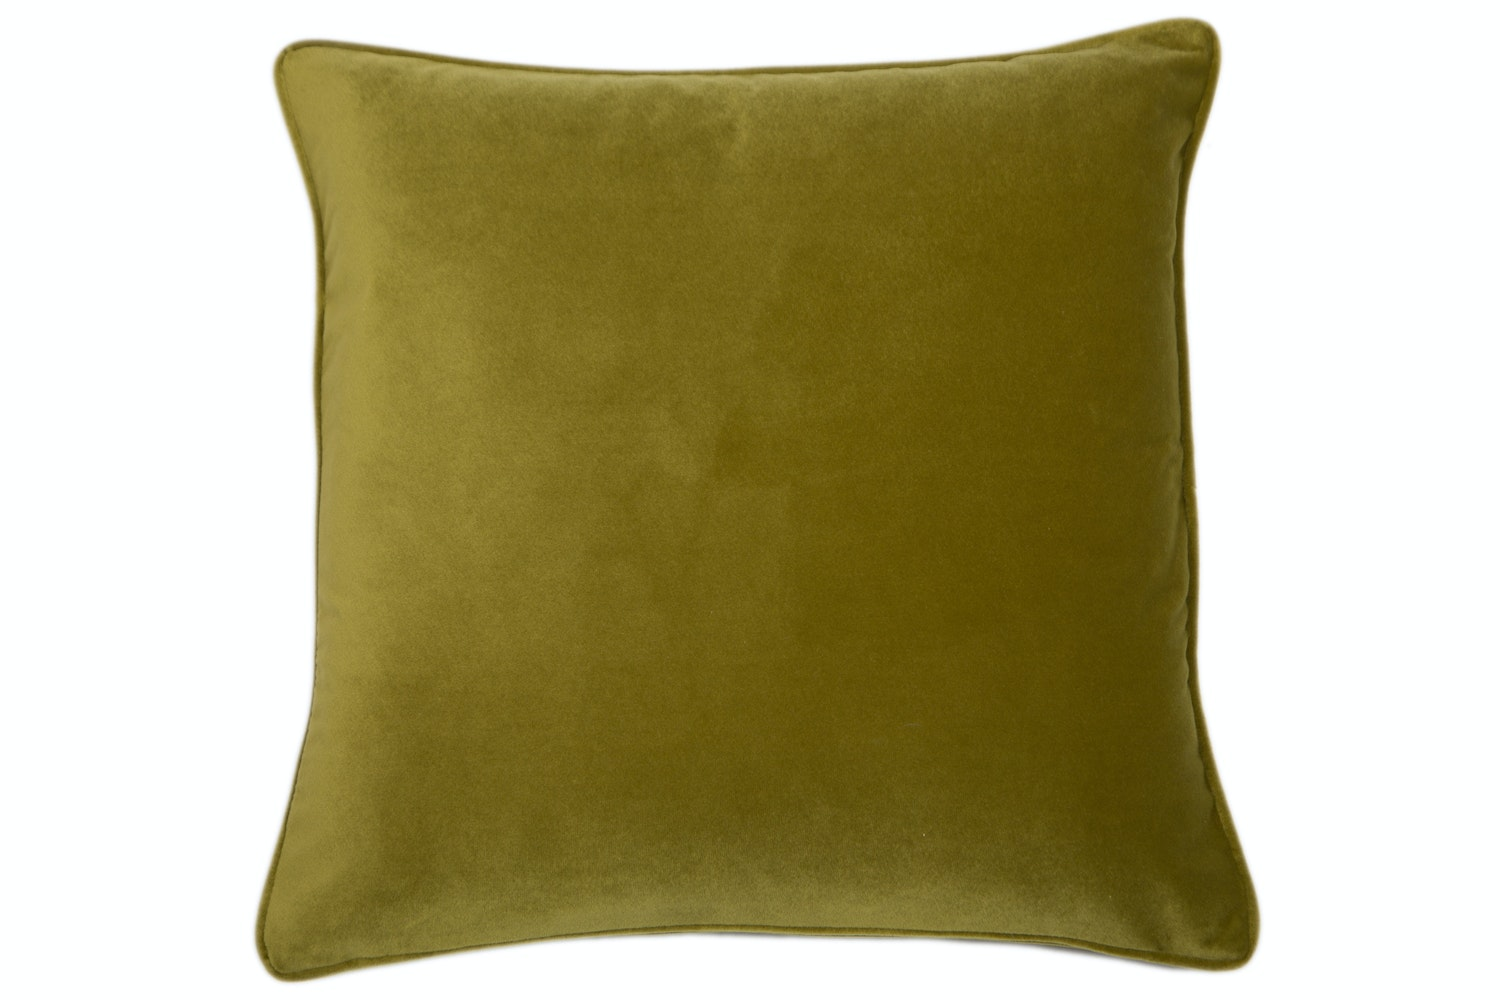 Velvet Piped Acid Green Cushion | 43X43cm